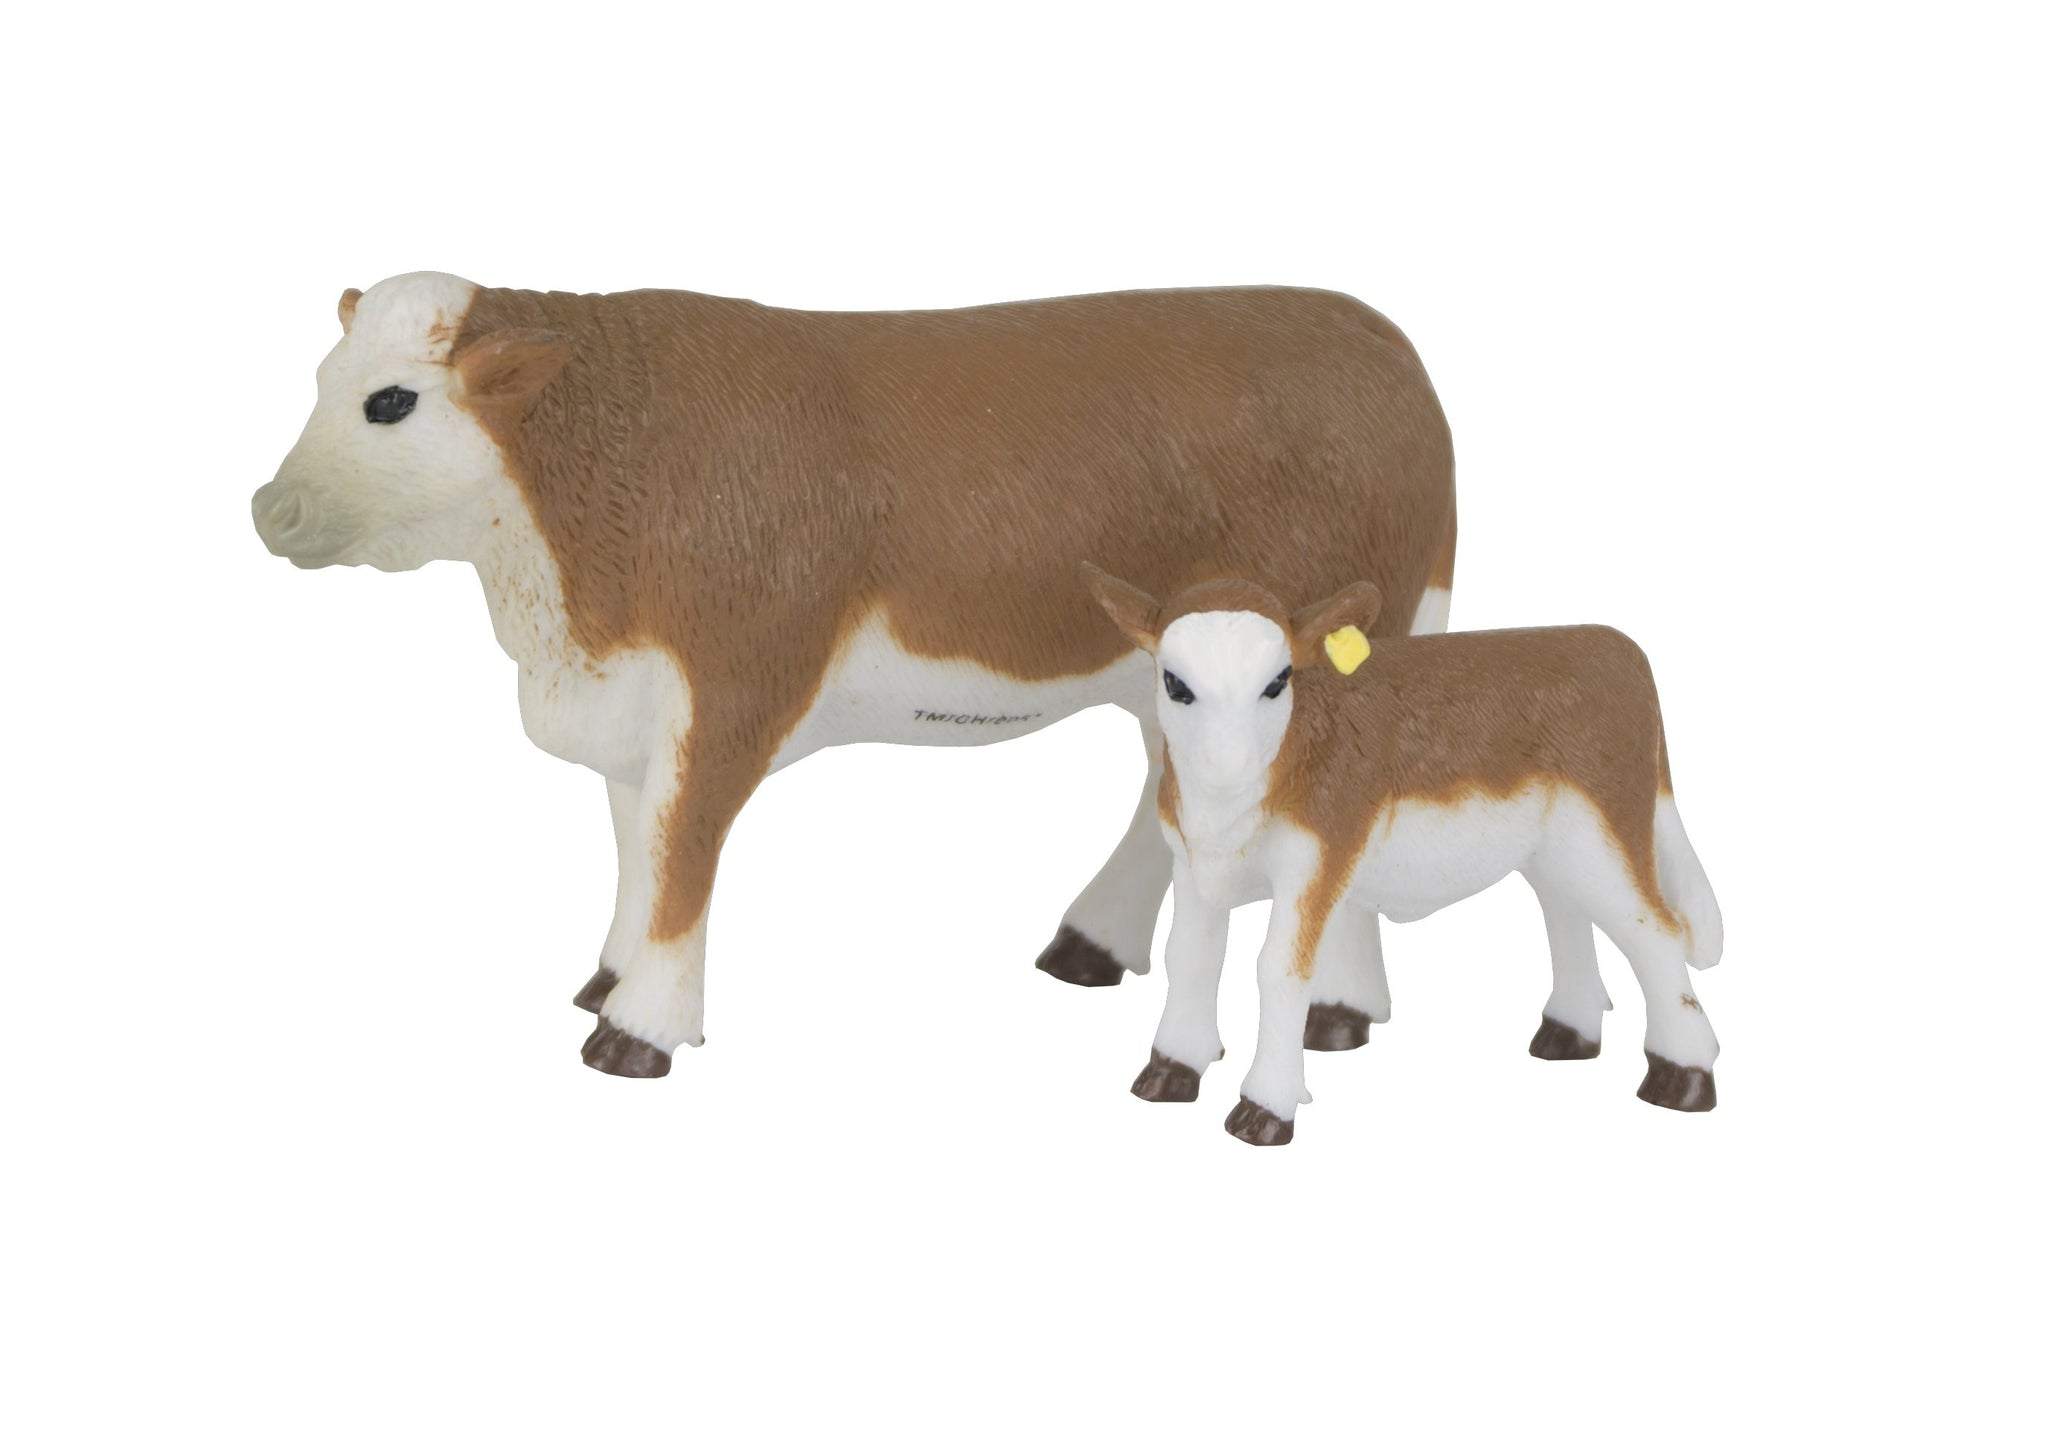 Hereford Cow and Calf Toy Set